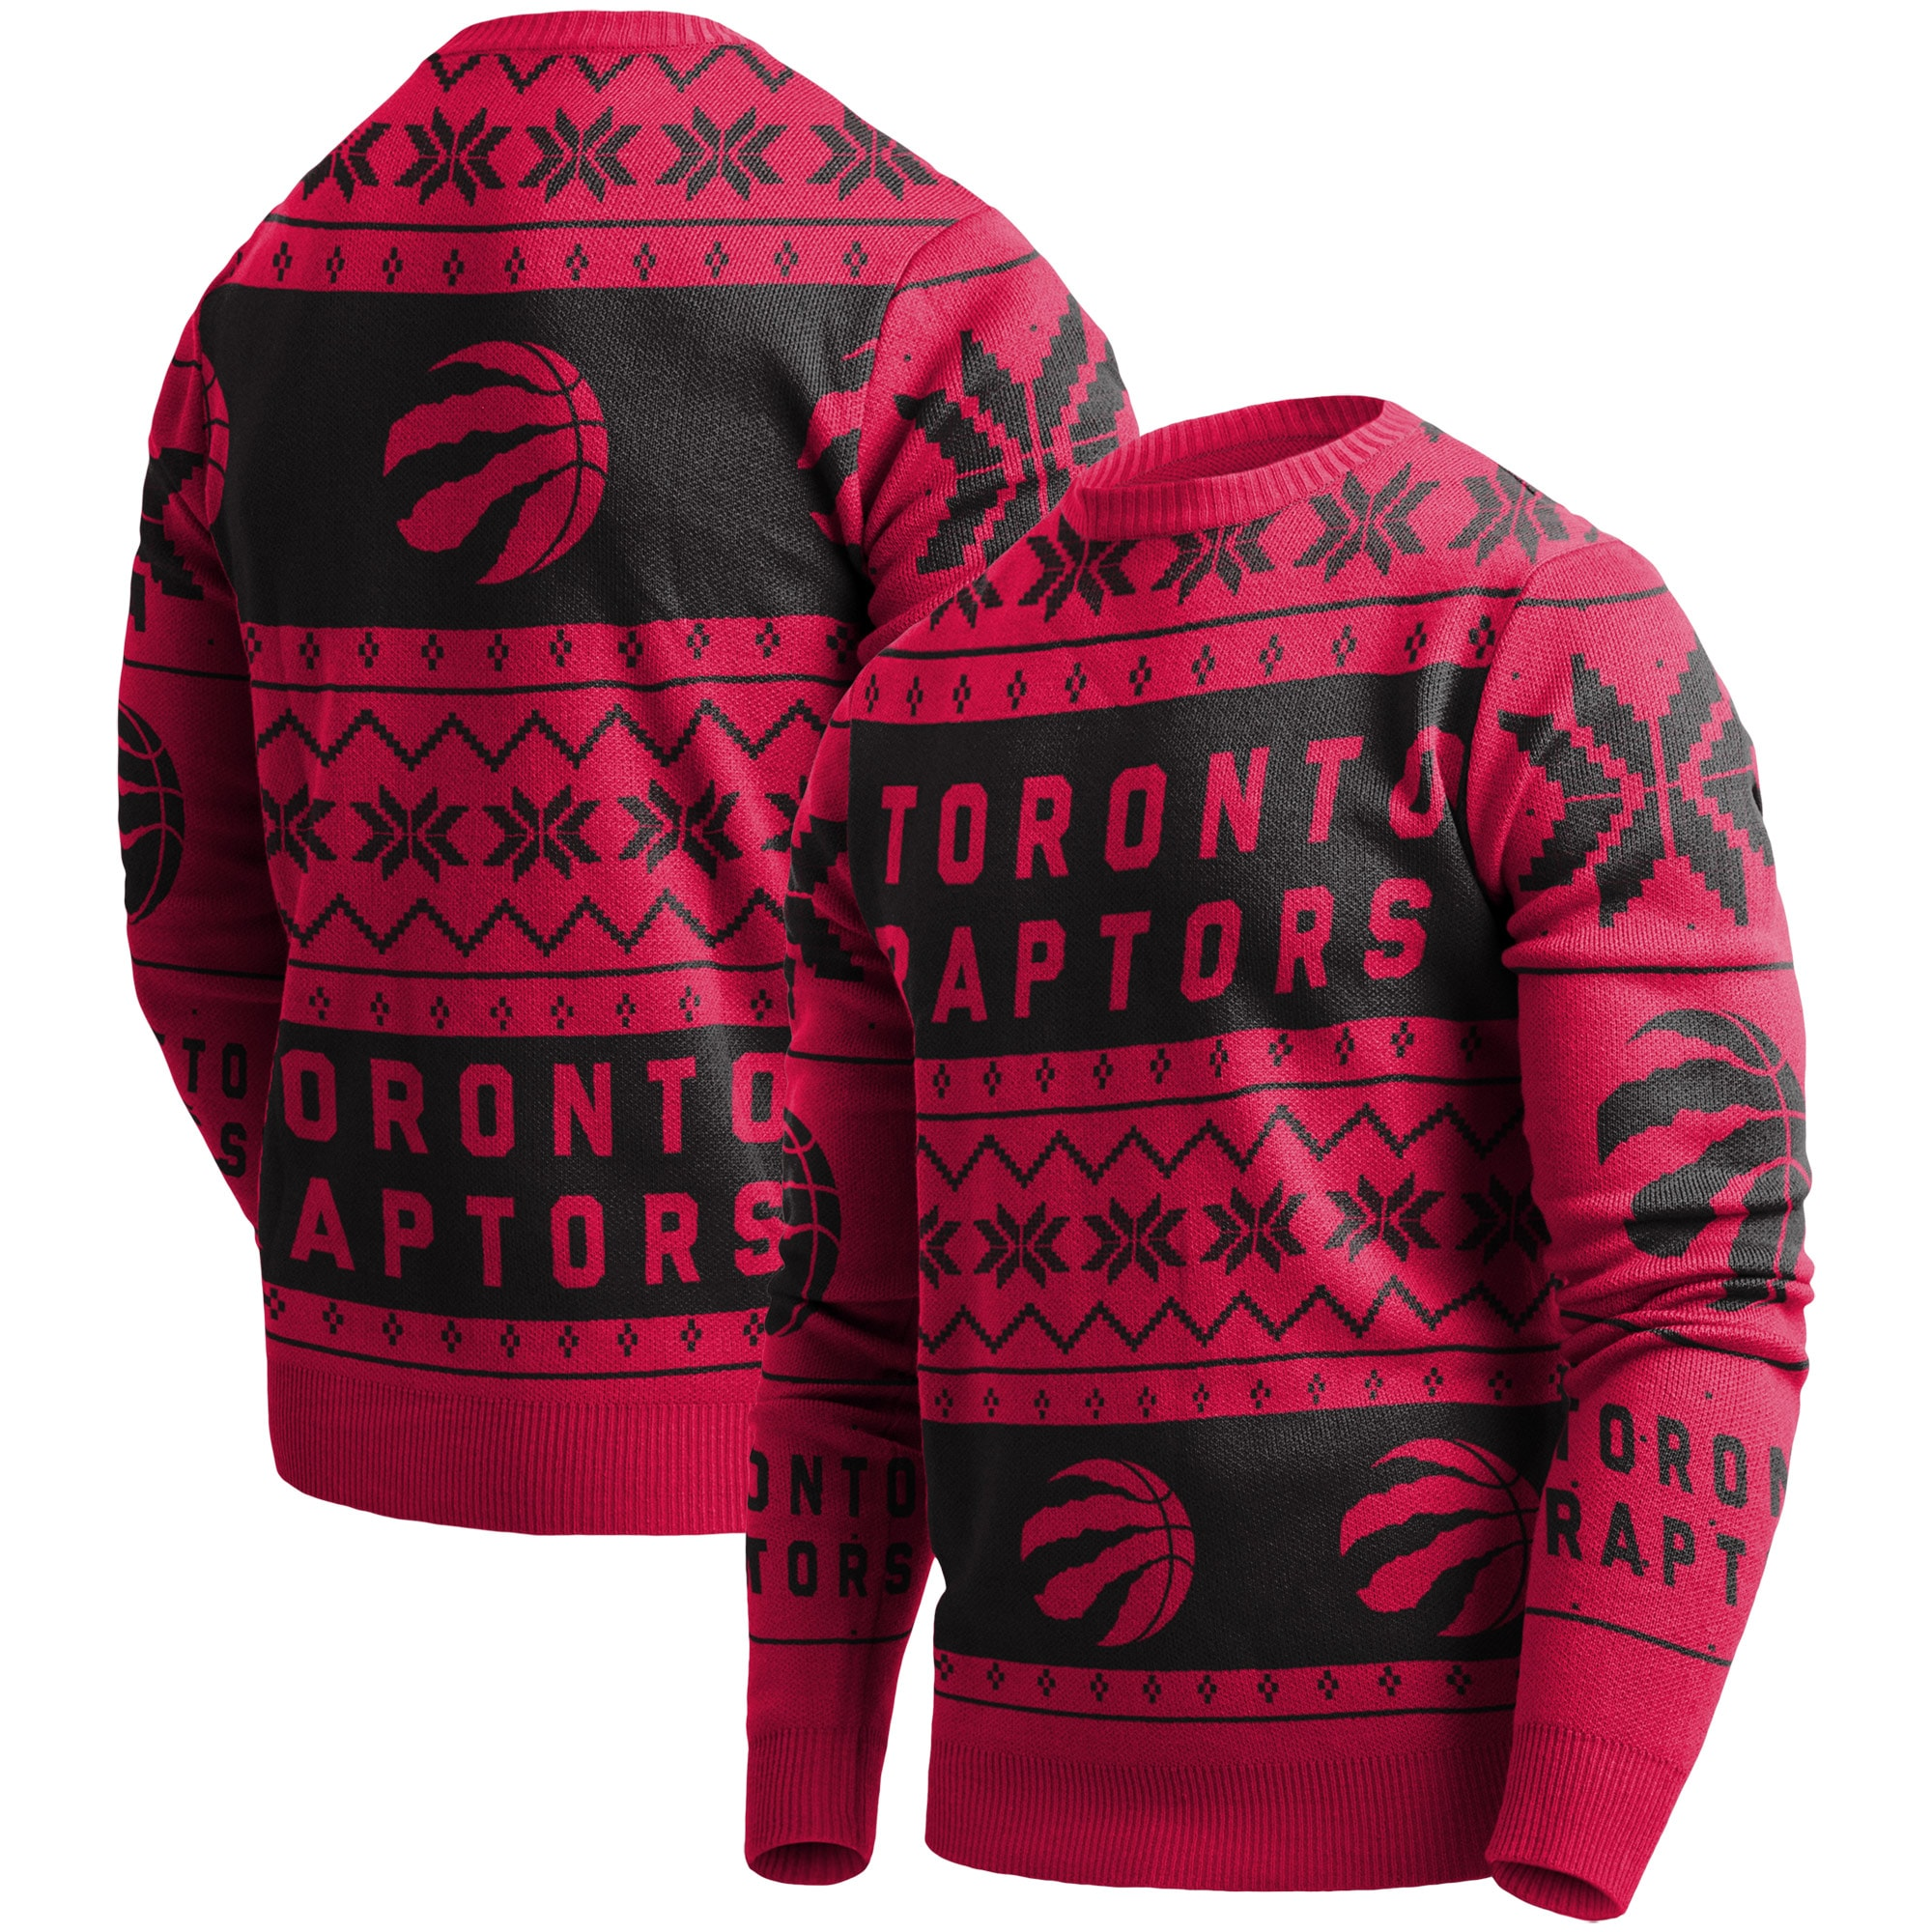 Toronto Raptors Ugly Pullover Sweater - Red